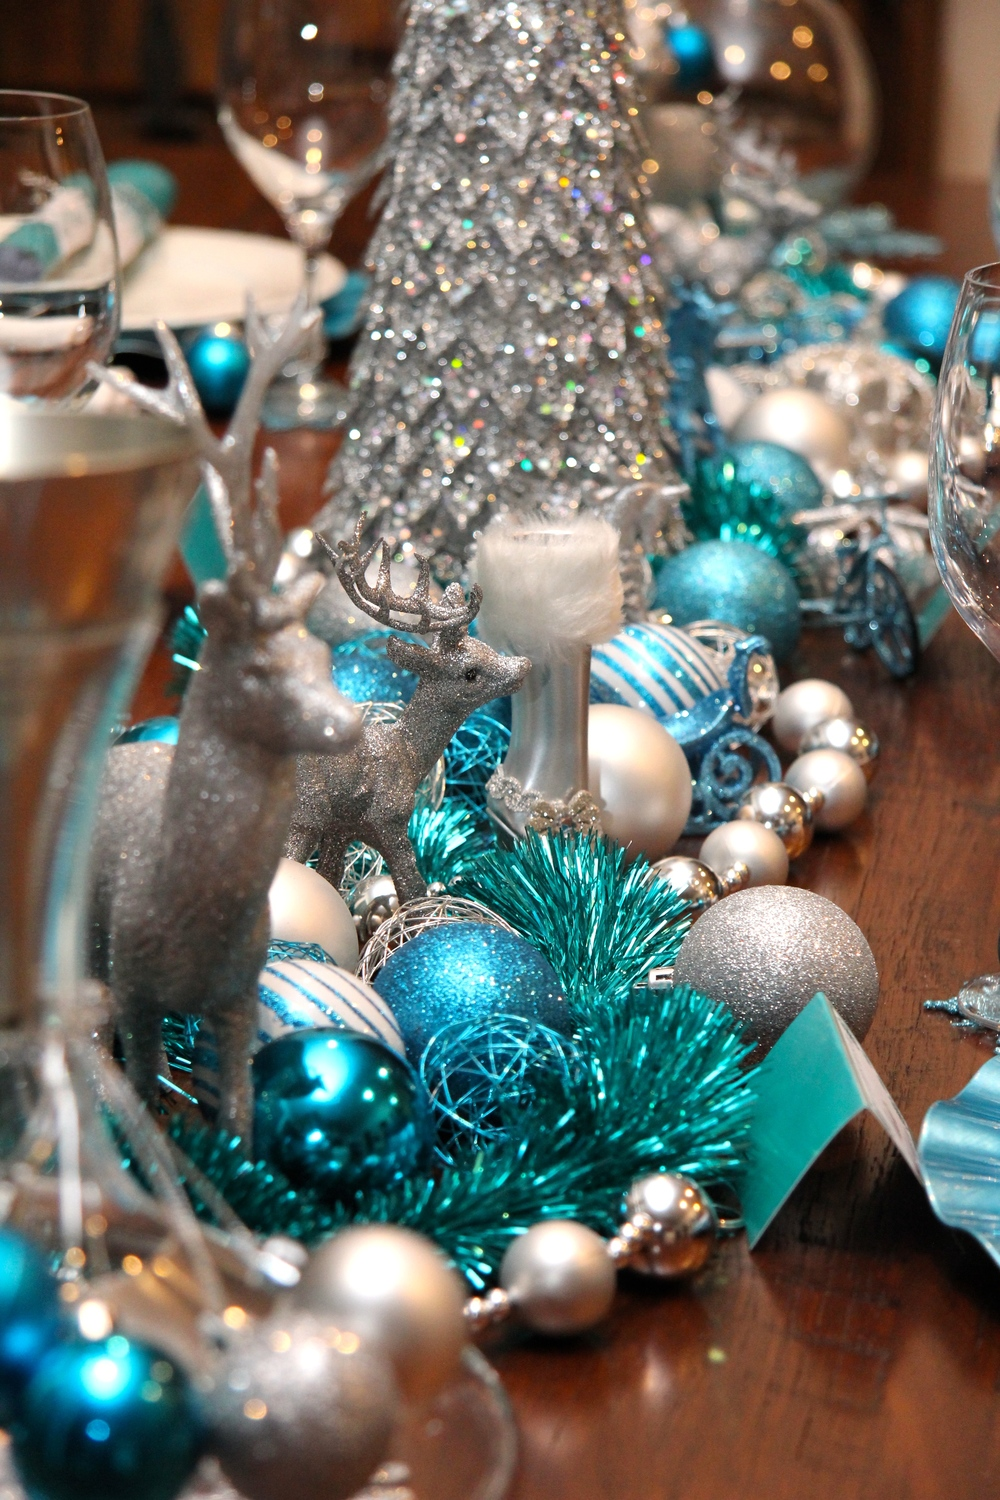 36 impressive christmas table centerpieces decoholic - Christmas Table Chic Blue And Silver Design Chic Party Ideas